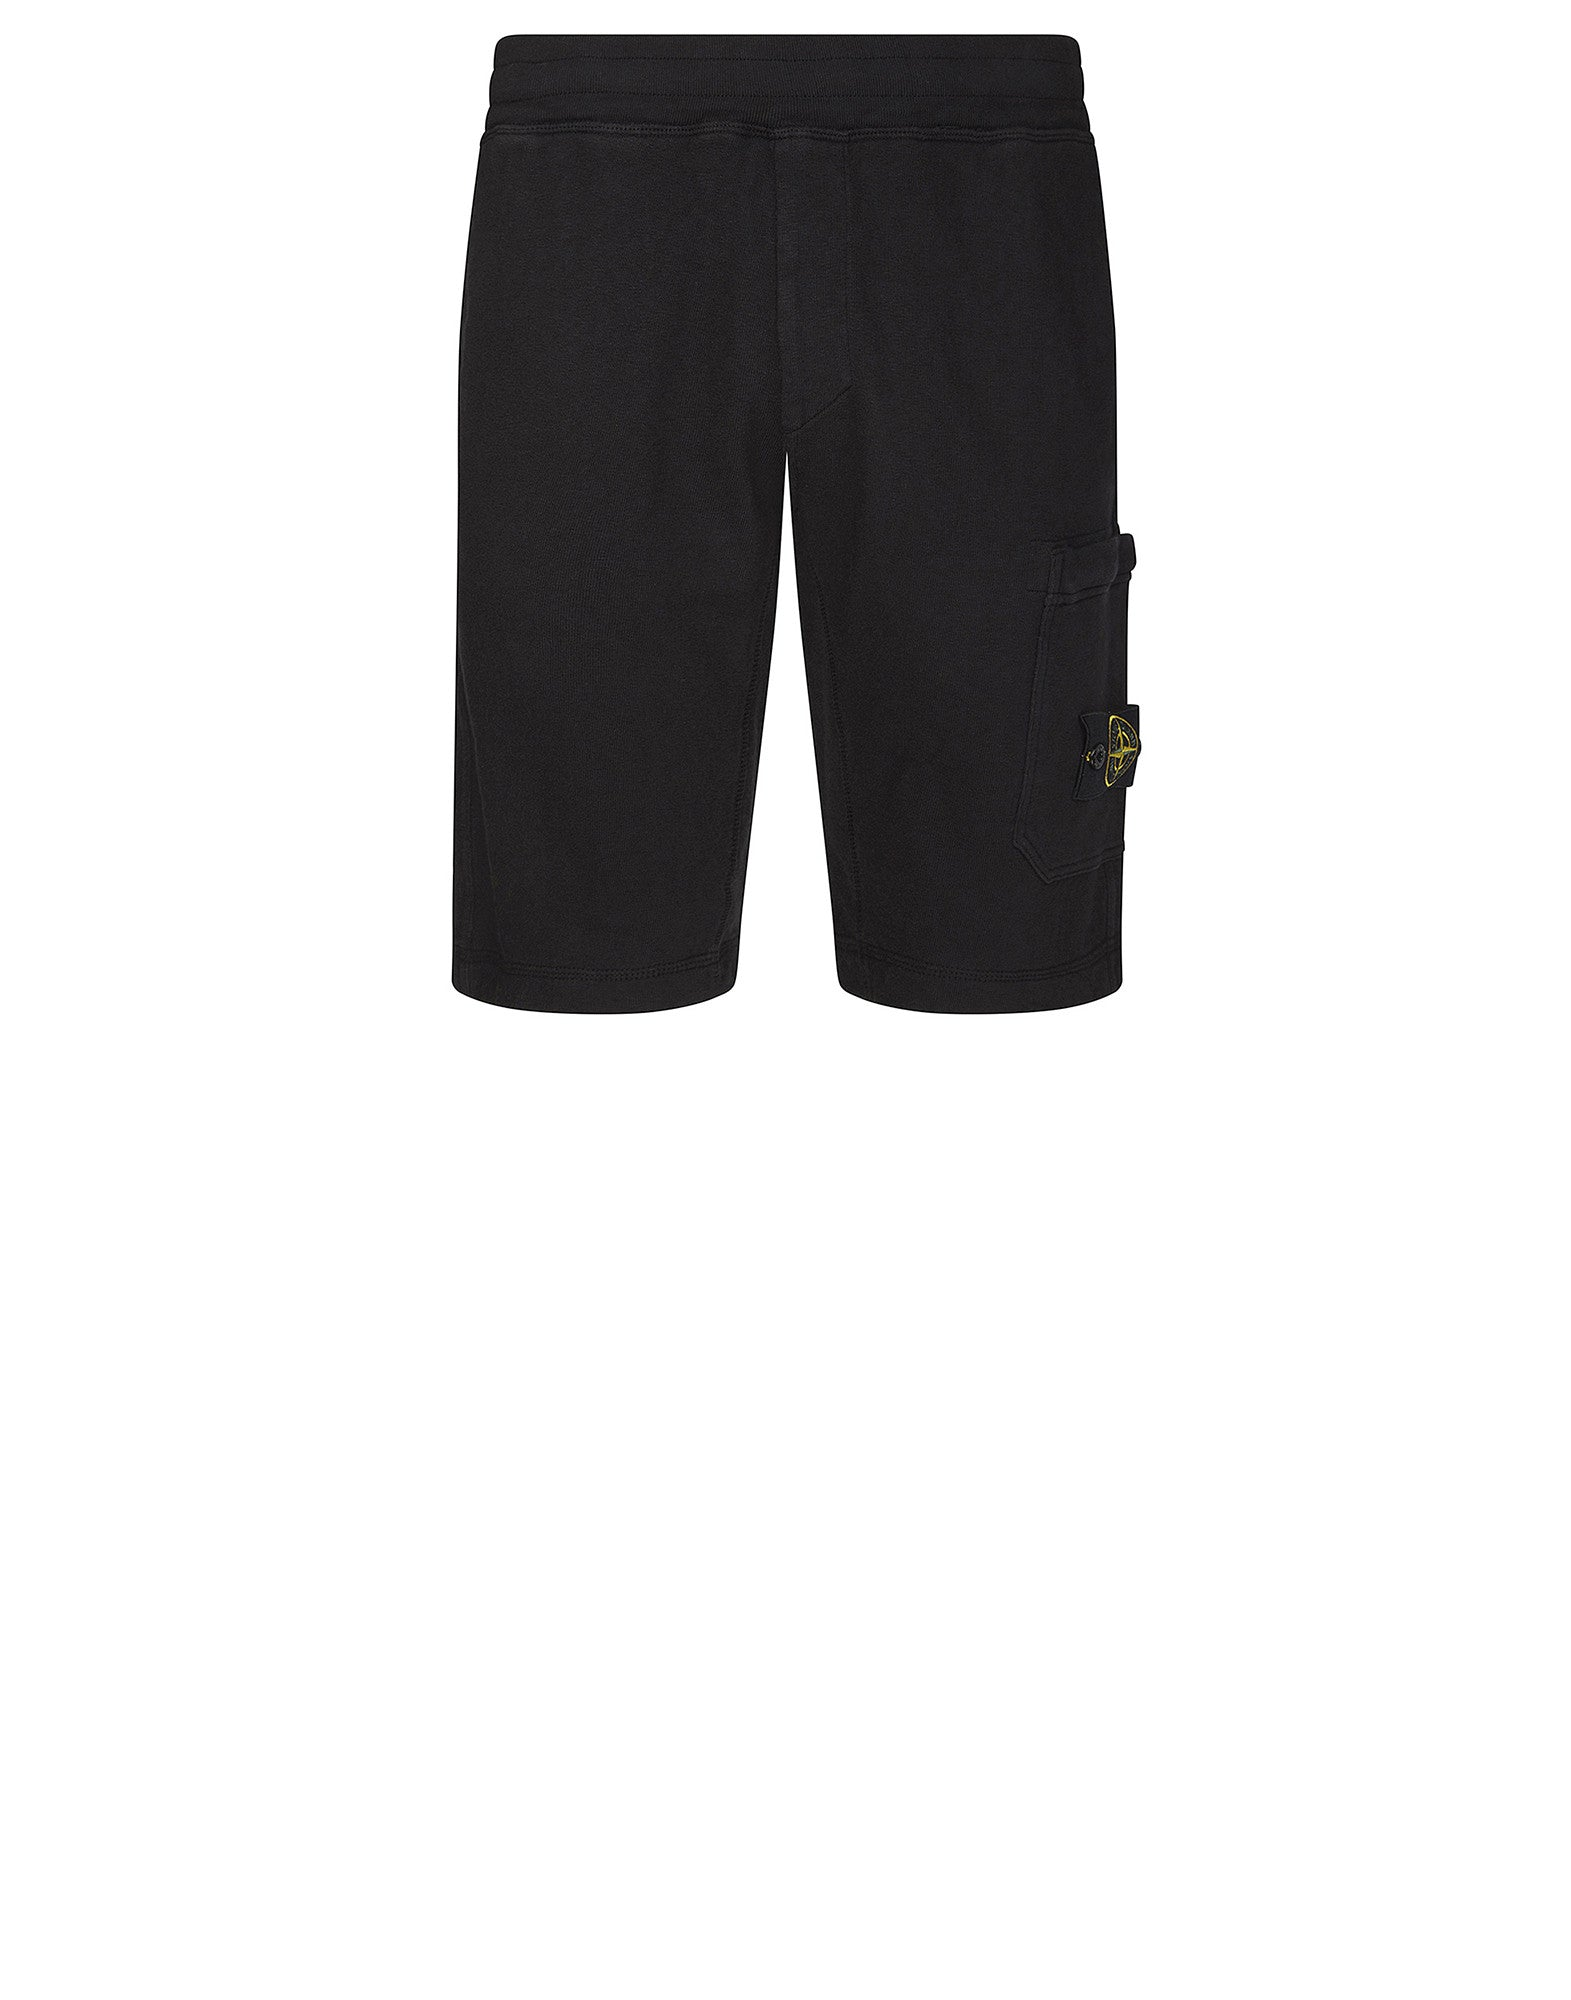 66360 T.CO+OLD Fleece Shorts in Black